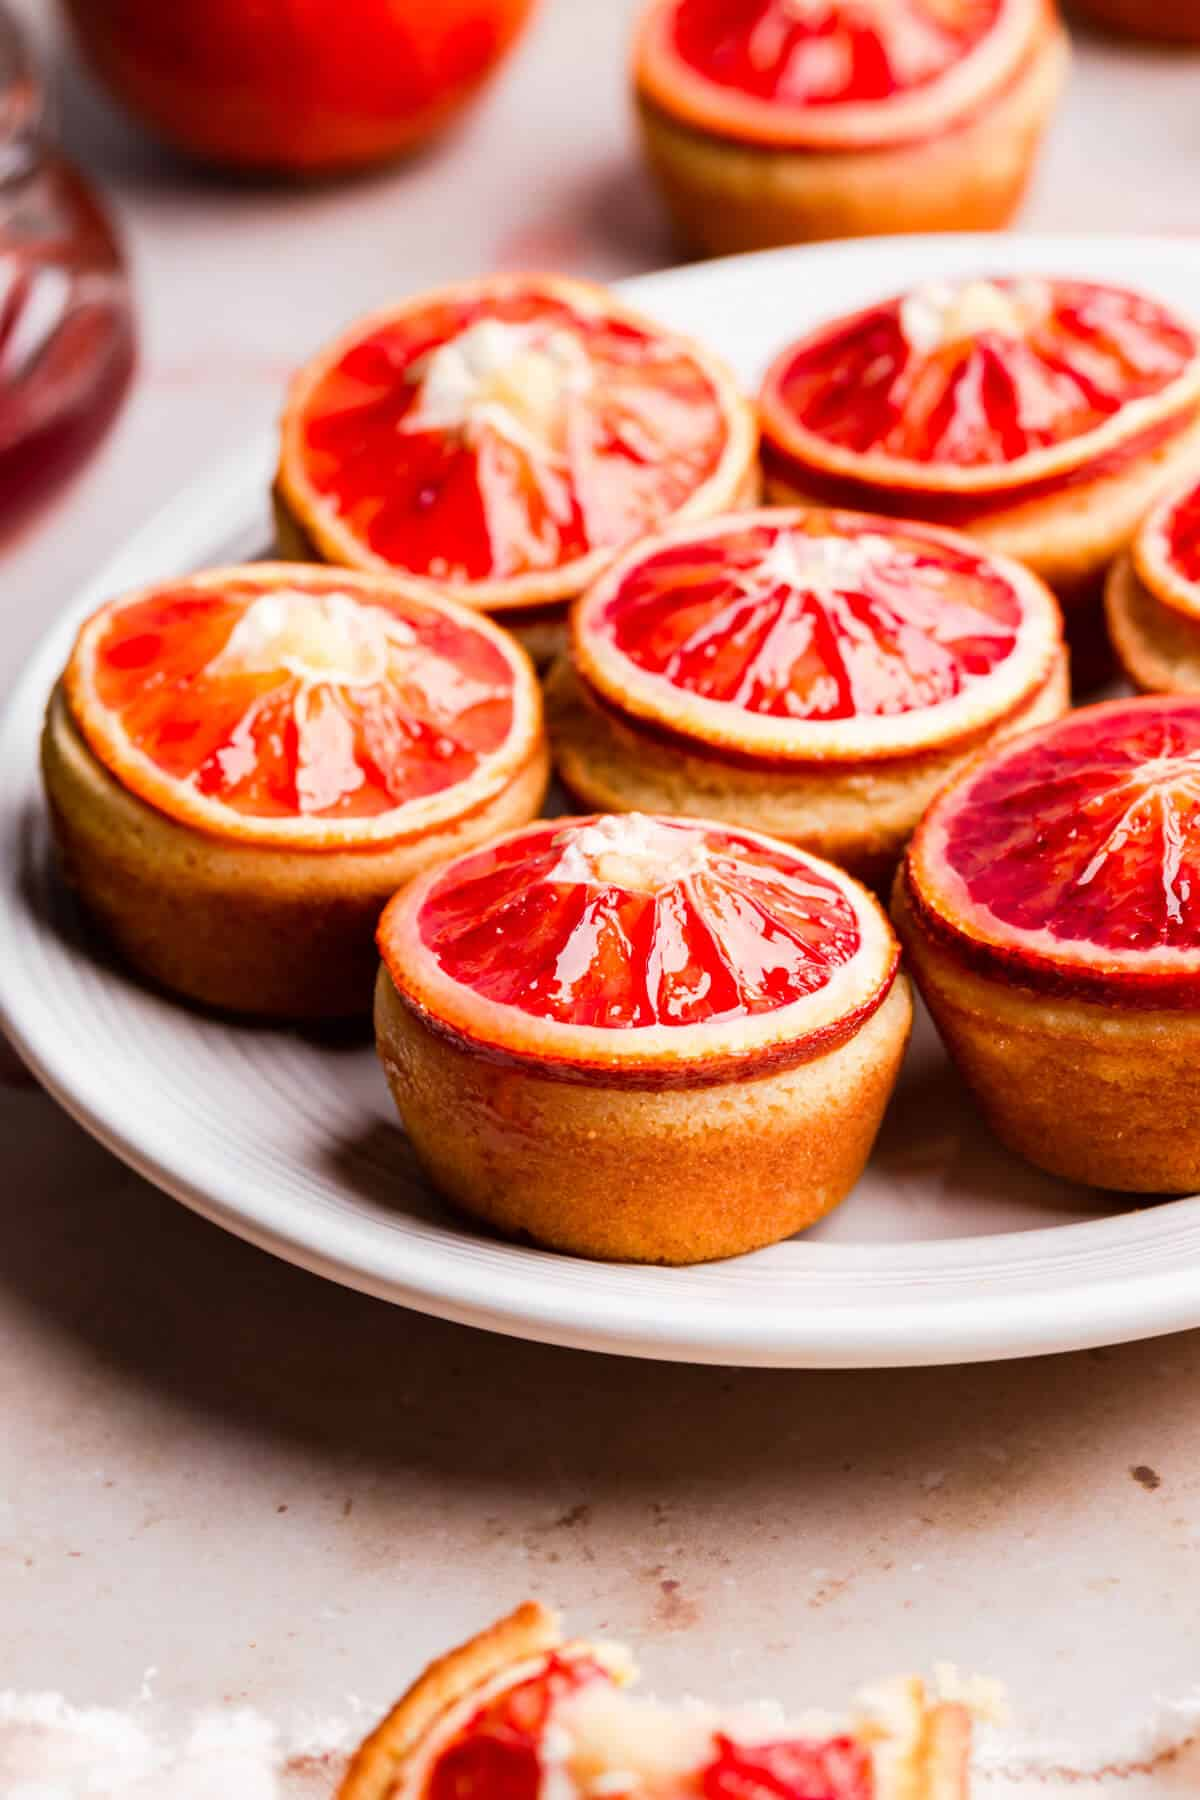 straight ahead angle photo of blood orange and semolina cakes on a plate